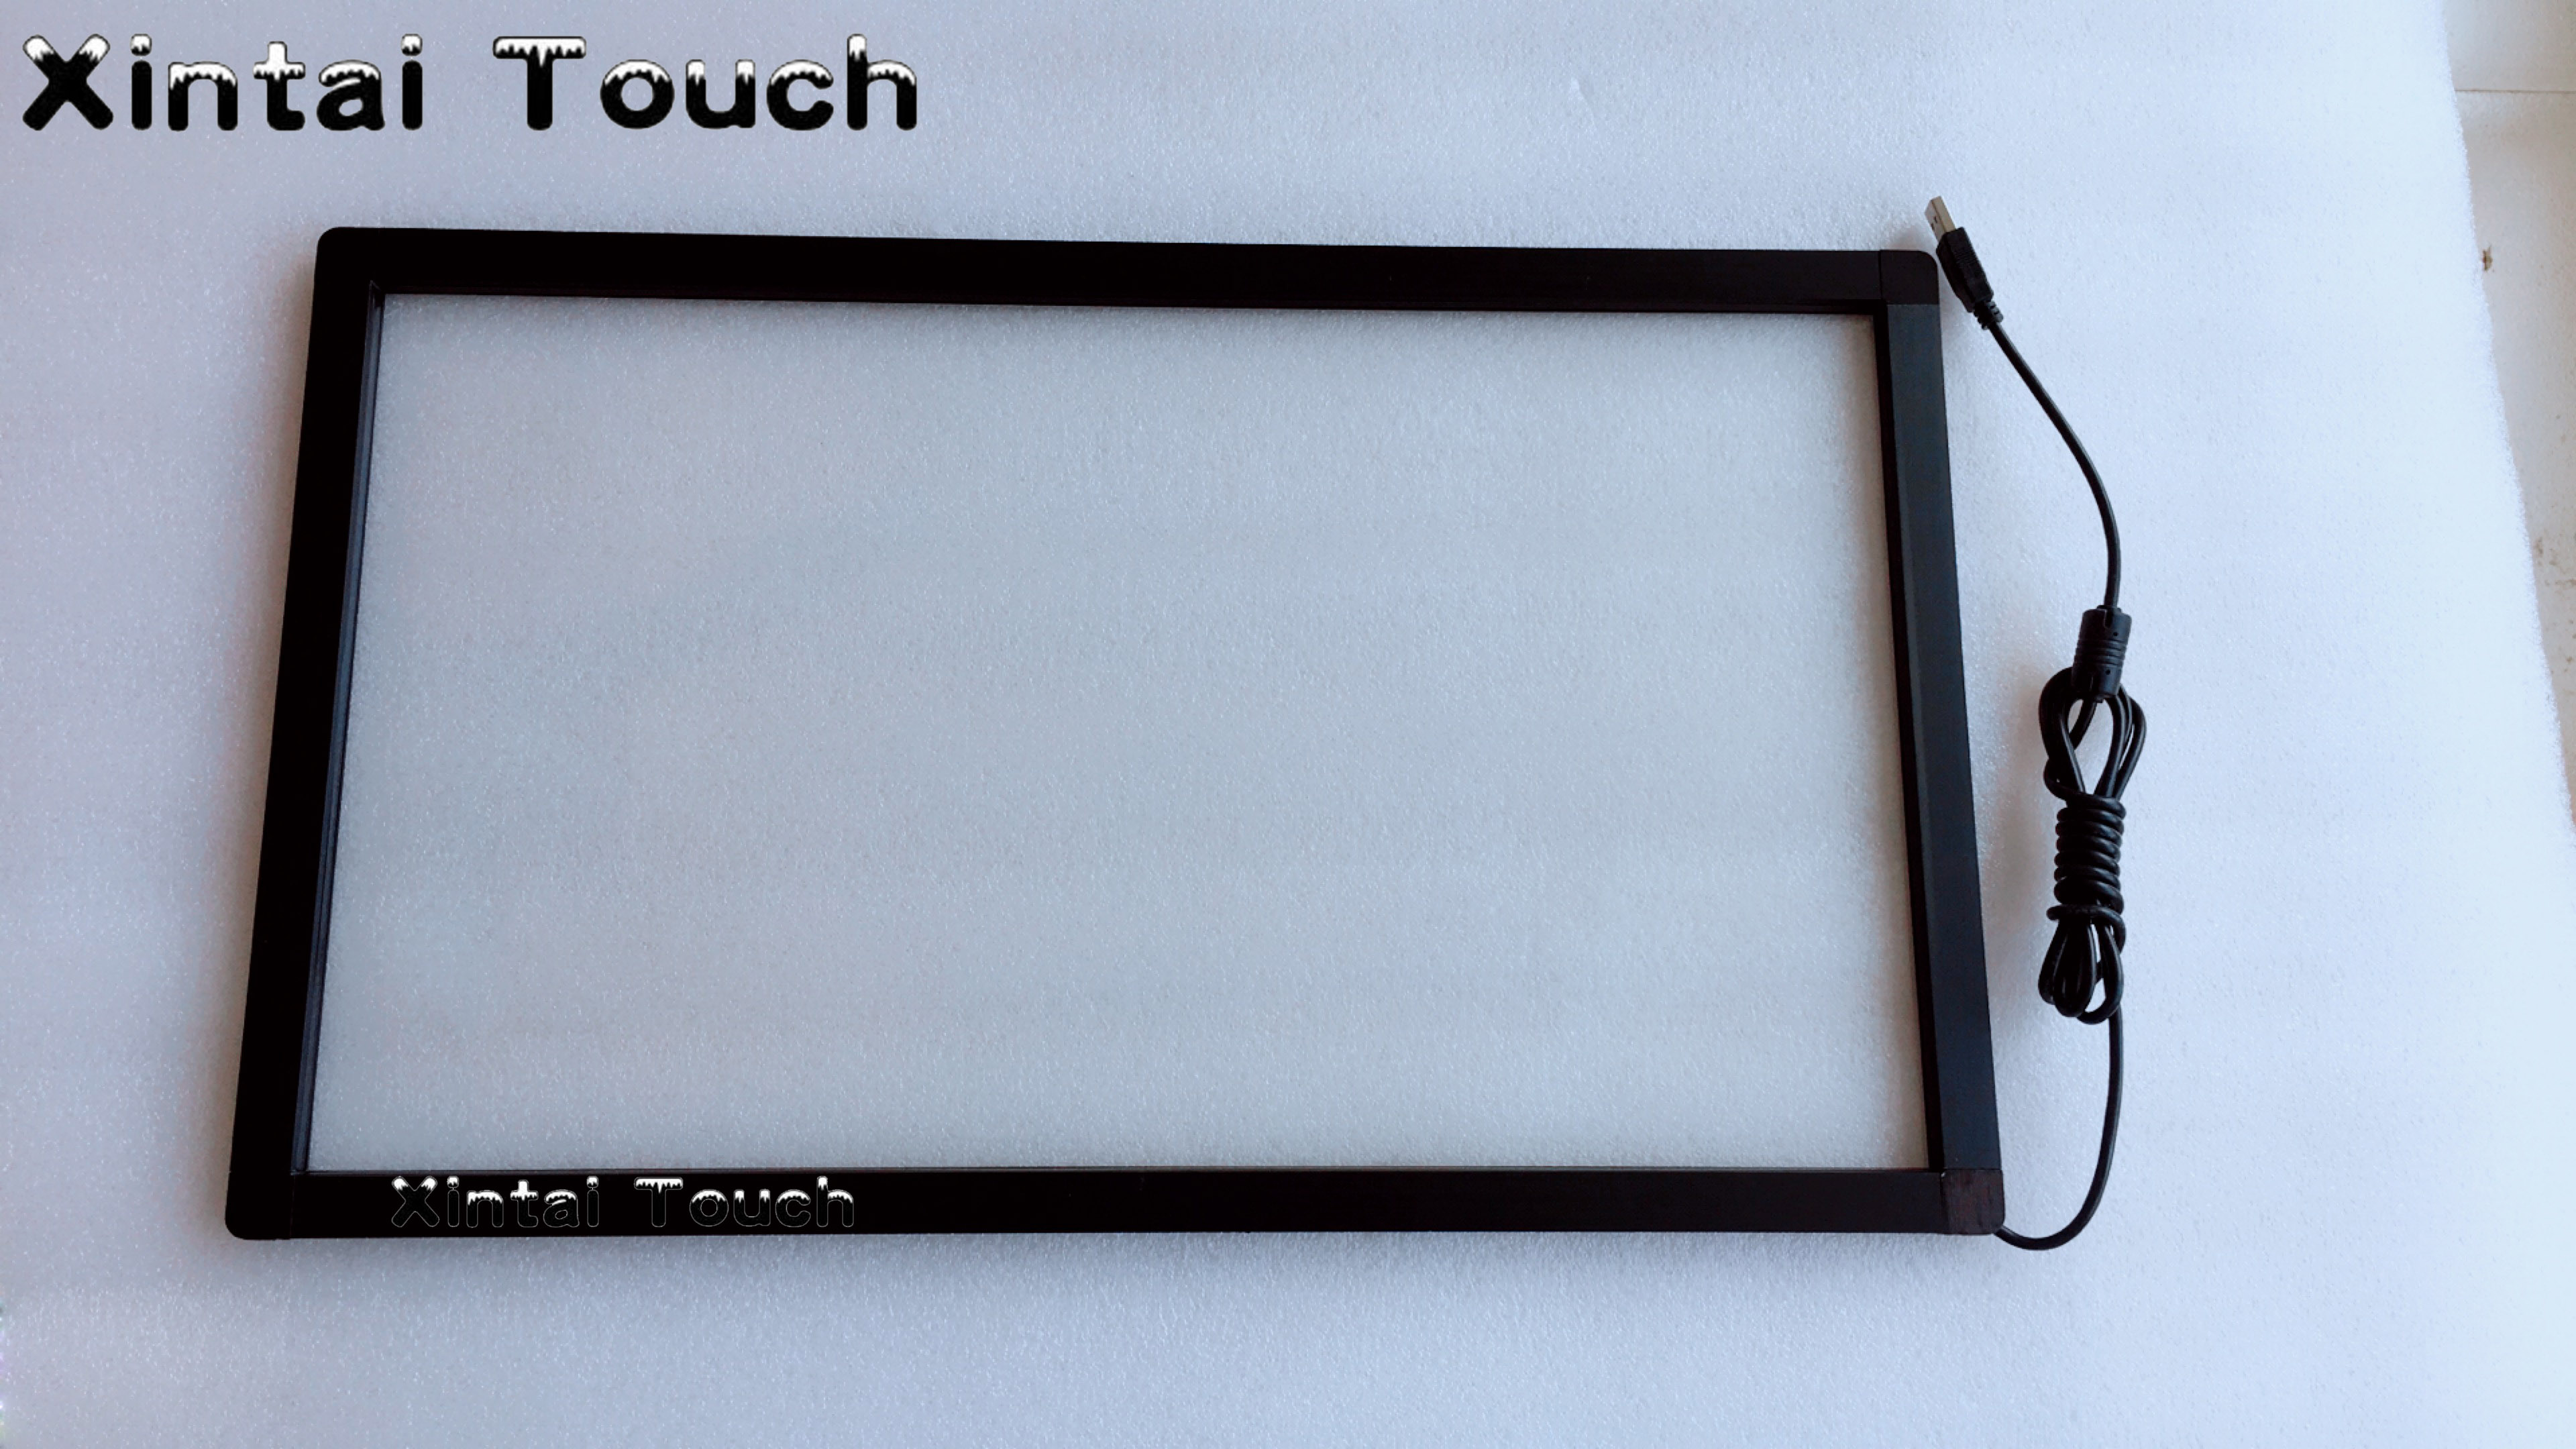 40 inch Overlay Infrared Touch Screen Panel with USB port, 40 truly 10 points interactvie IR touch screen frame for kiosk40 inch Overlay Infrared Touch Screen Panel with USB port, 40 truly 10 points interactvie IR touch screen frame for kiosk